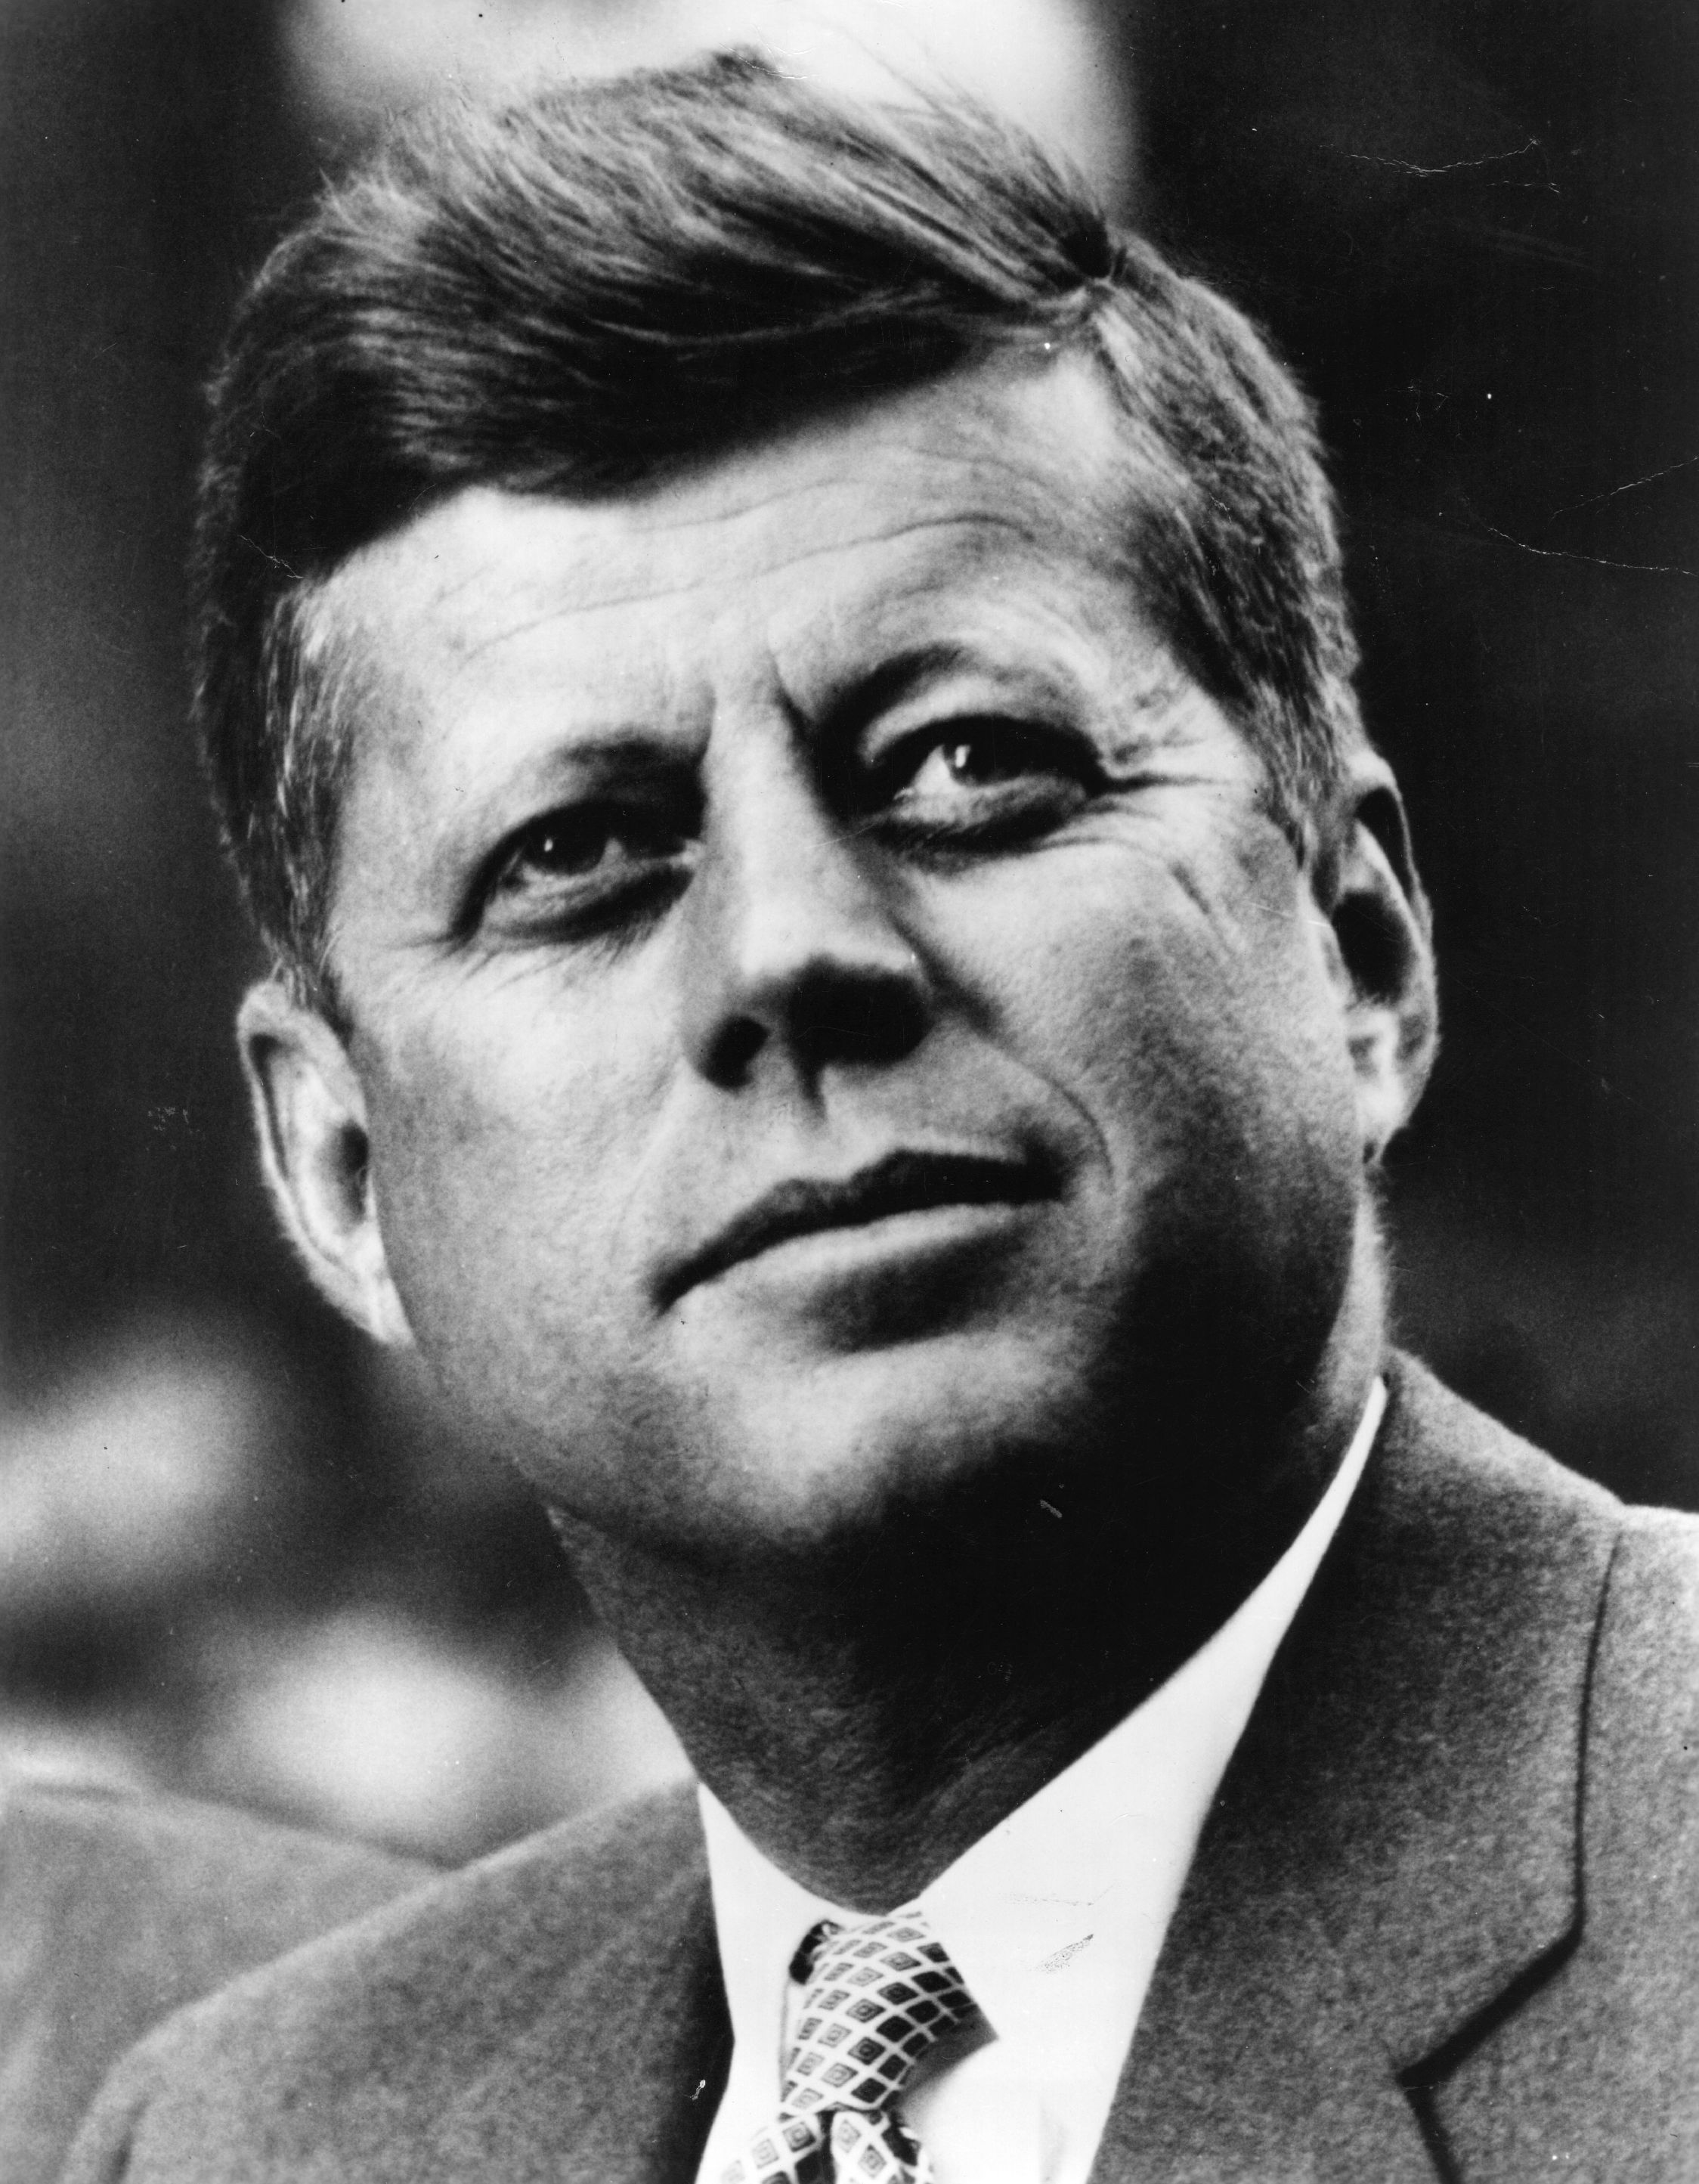 Published on December 10, 2013 in John F. Kennedy: The Peace President ...